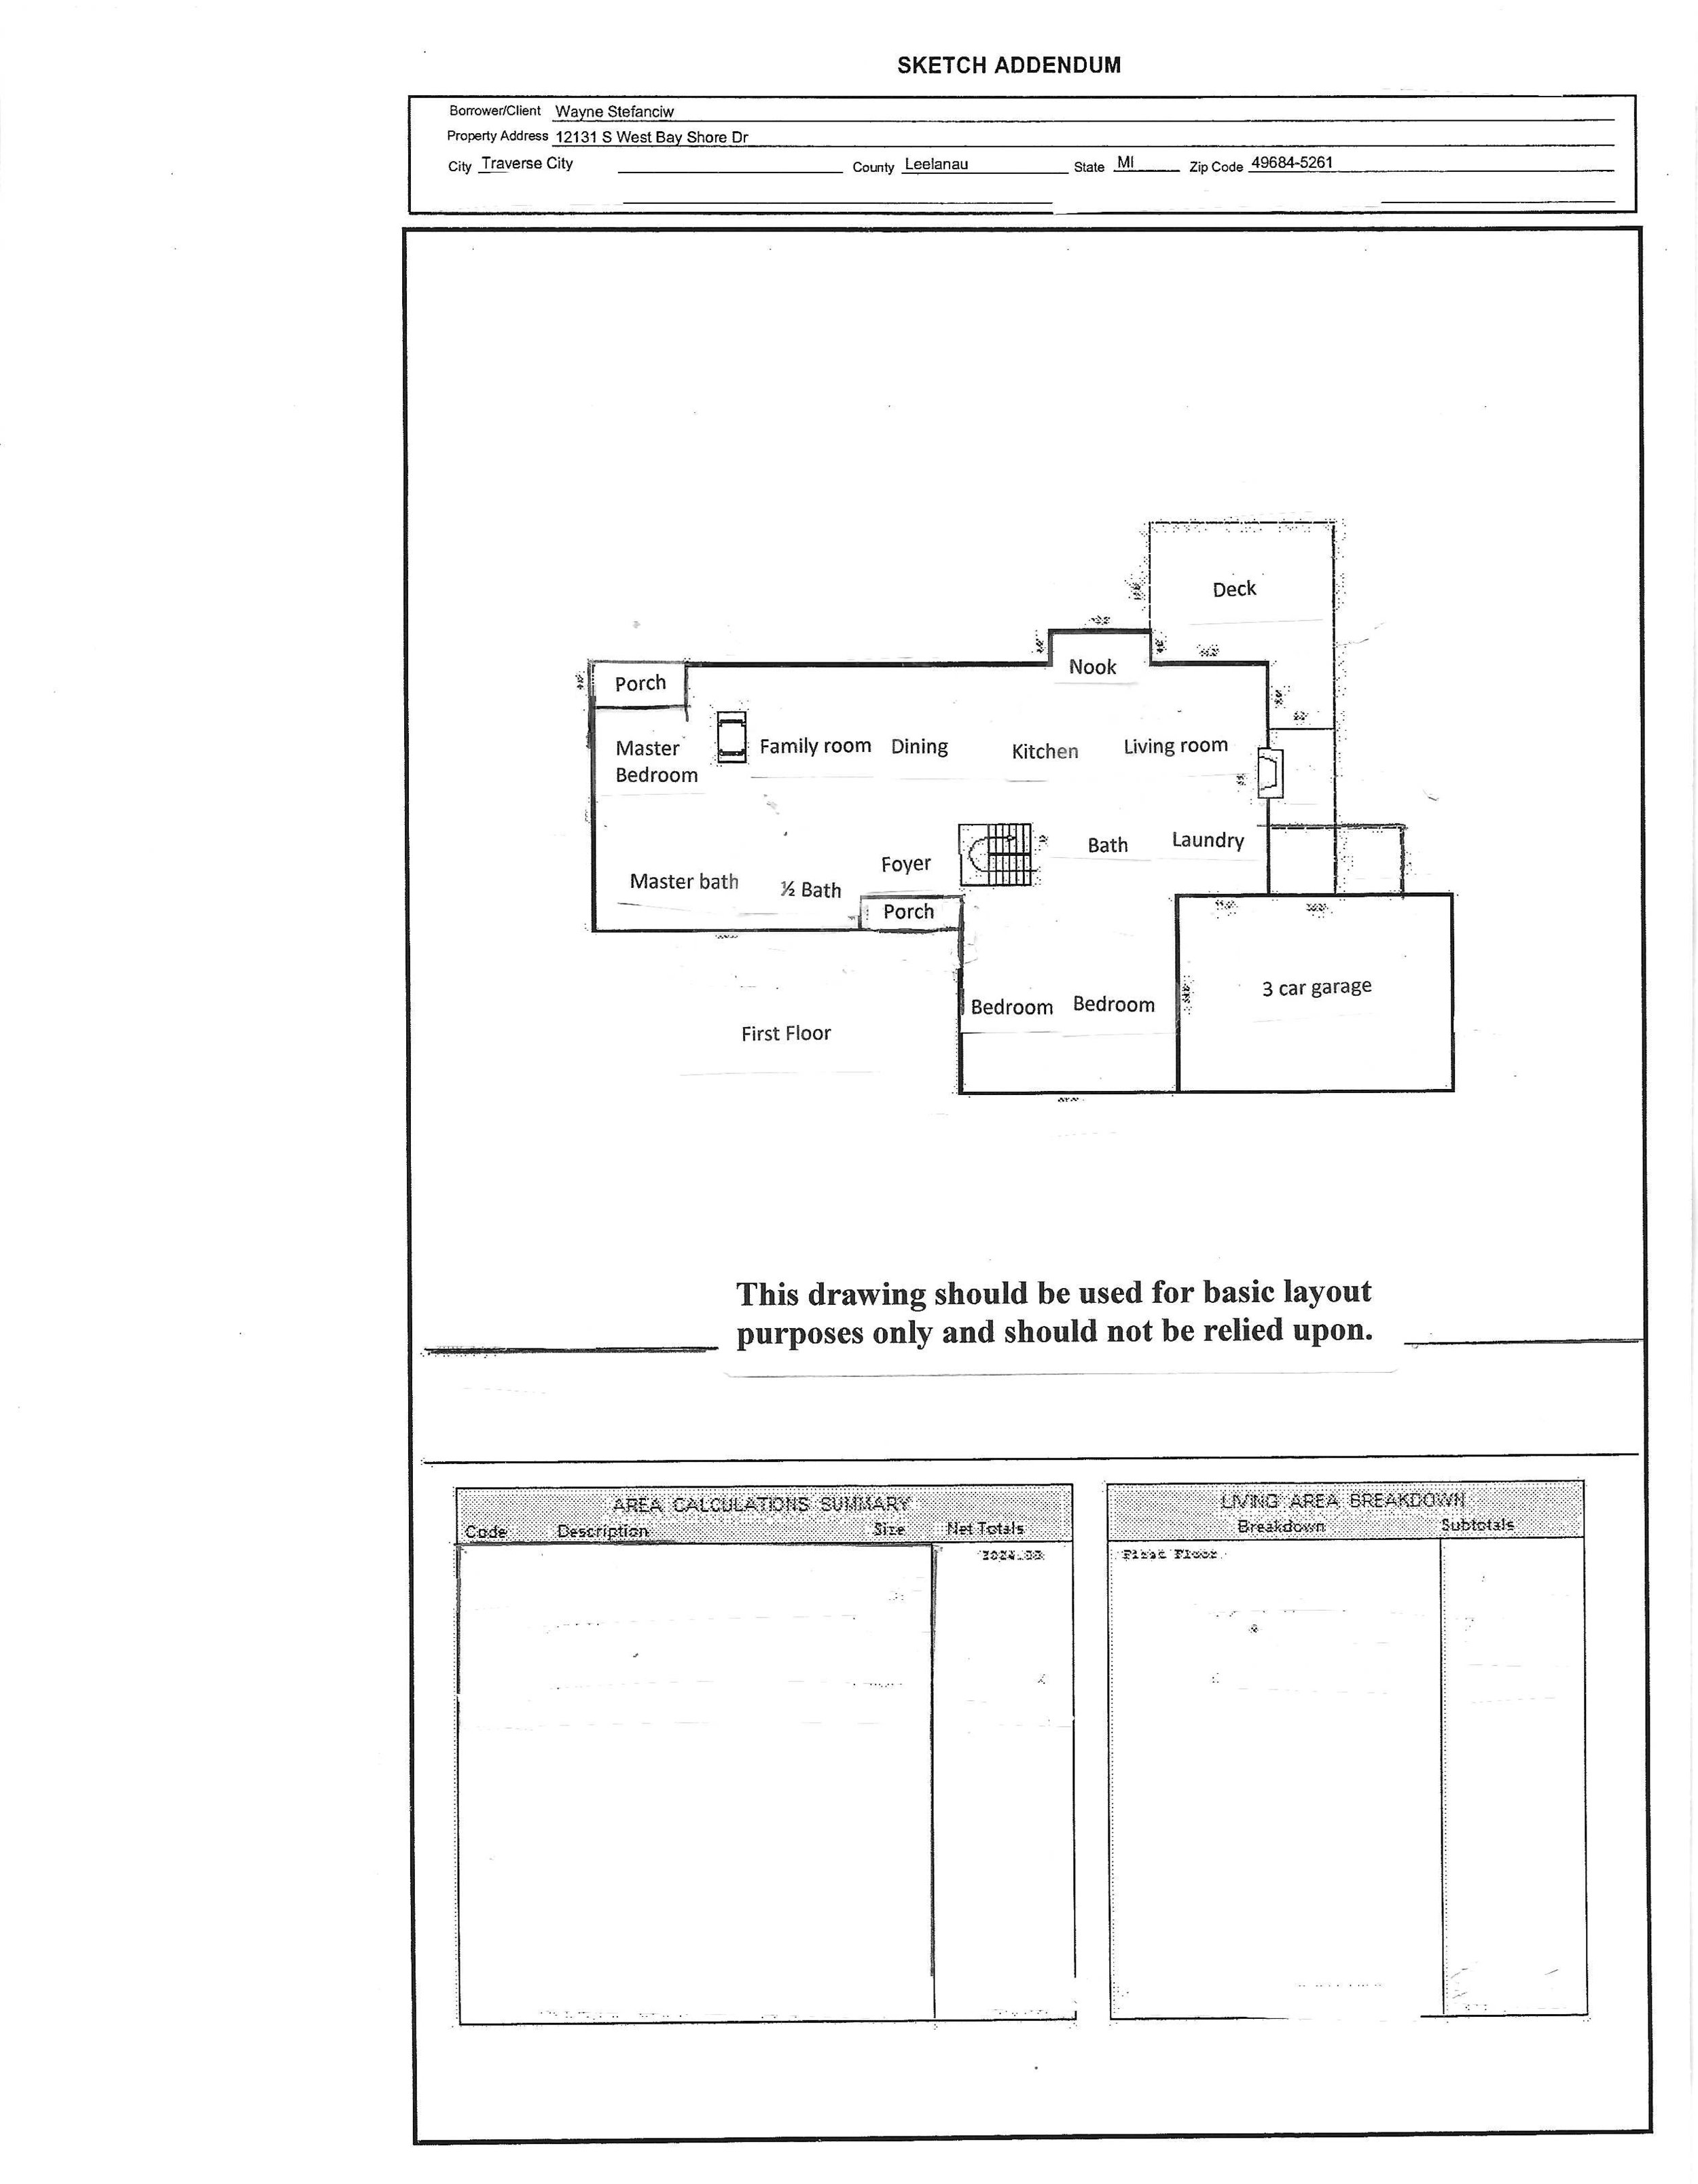 Floor Plans M-22 Waterfront_Page_1.jpg